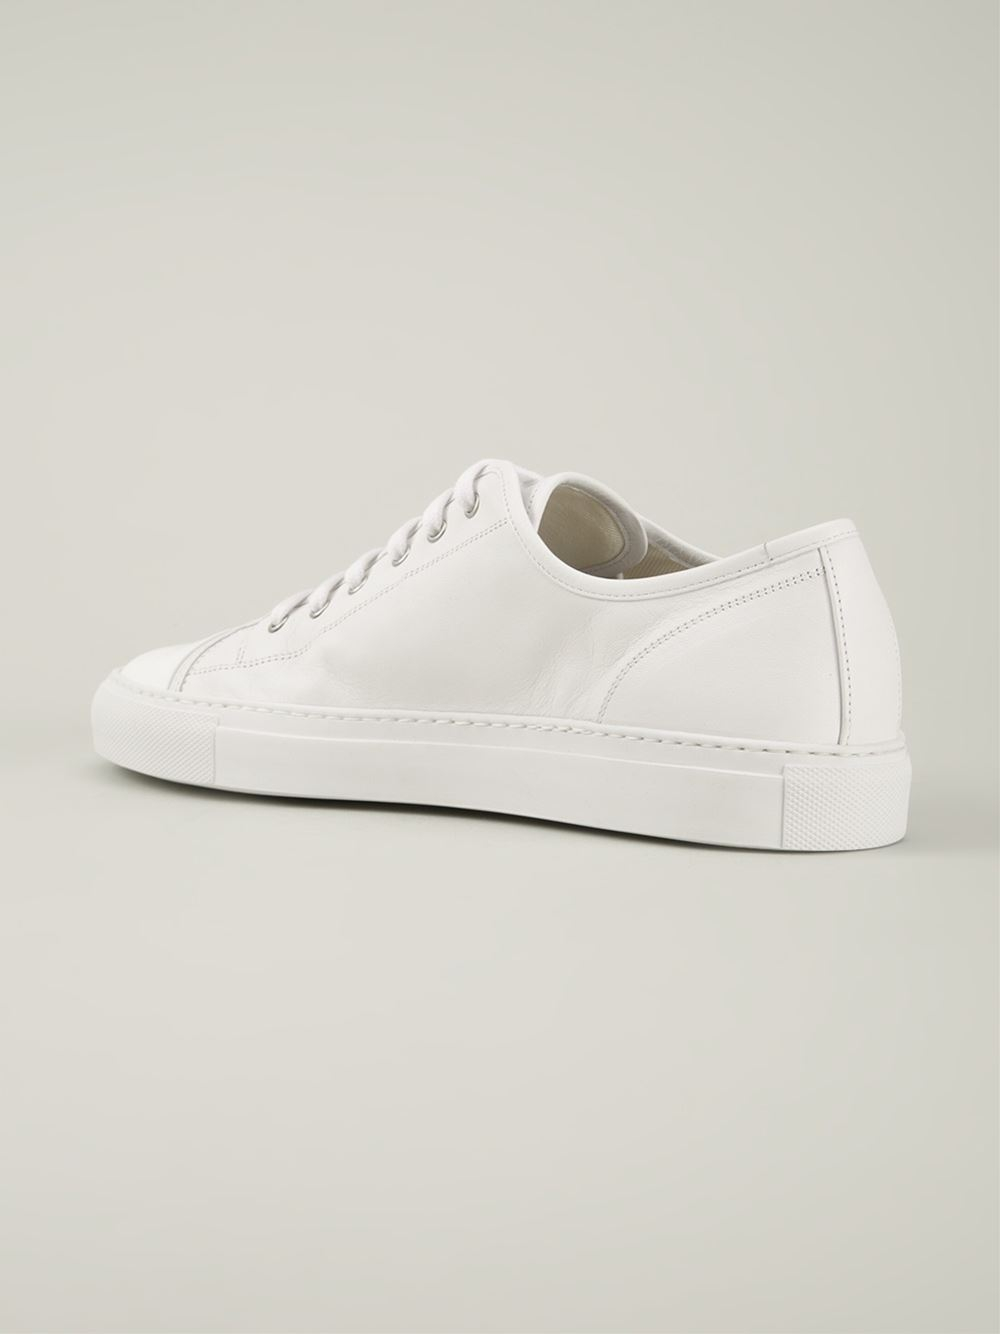 Lyst - Common Projects Lace-Up Sneakers in White for Men